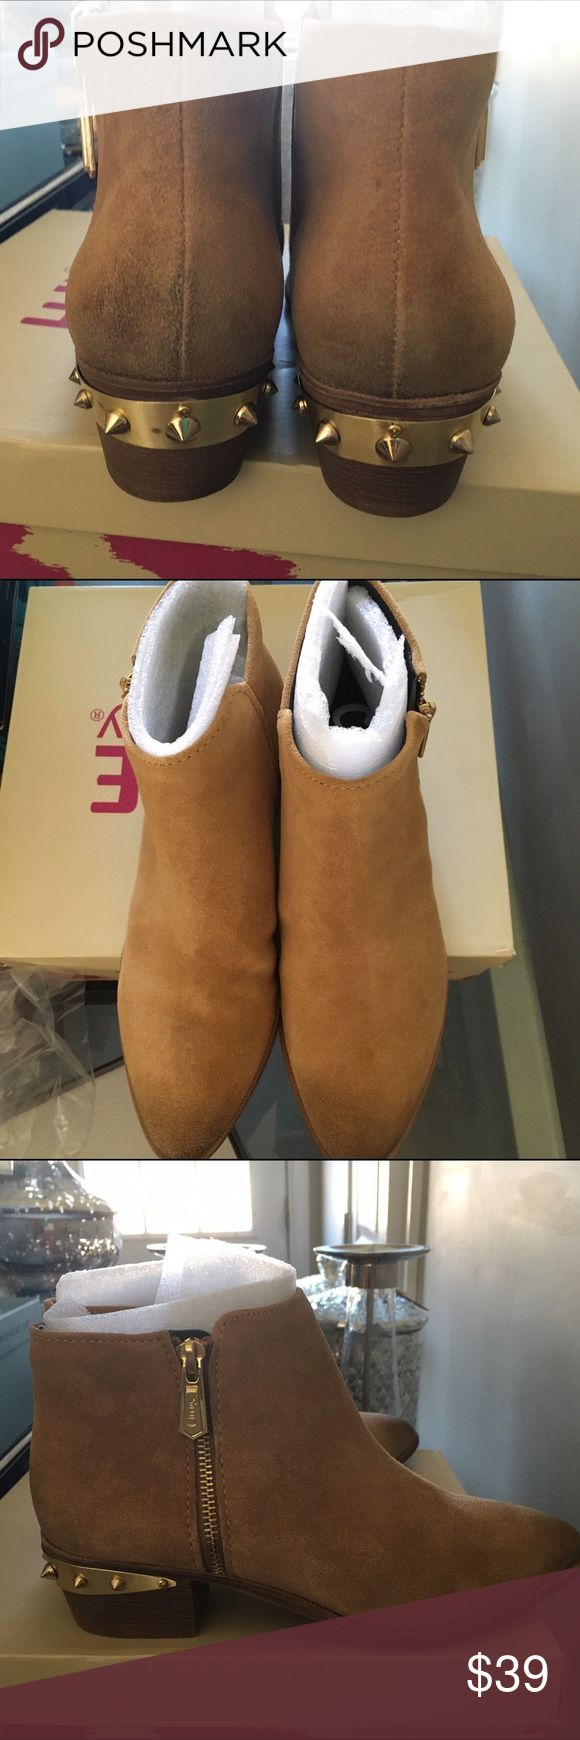 NEW, SIZE 8 CIRCUS BY SAM EDELMAN STUDDED BOOTIES BRAND NEW SUEDE CAMEL COLOR BOOTIES WITH GOLD STUDS ALONG HEEL~VERY COOL! SIZE 8. RETAIL $100. SAVE BIG!!! Sam Edelman Shoes Ankle Boots & Booties